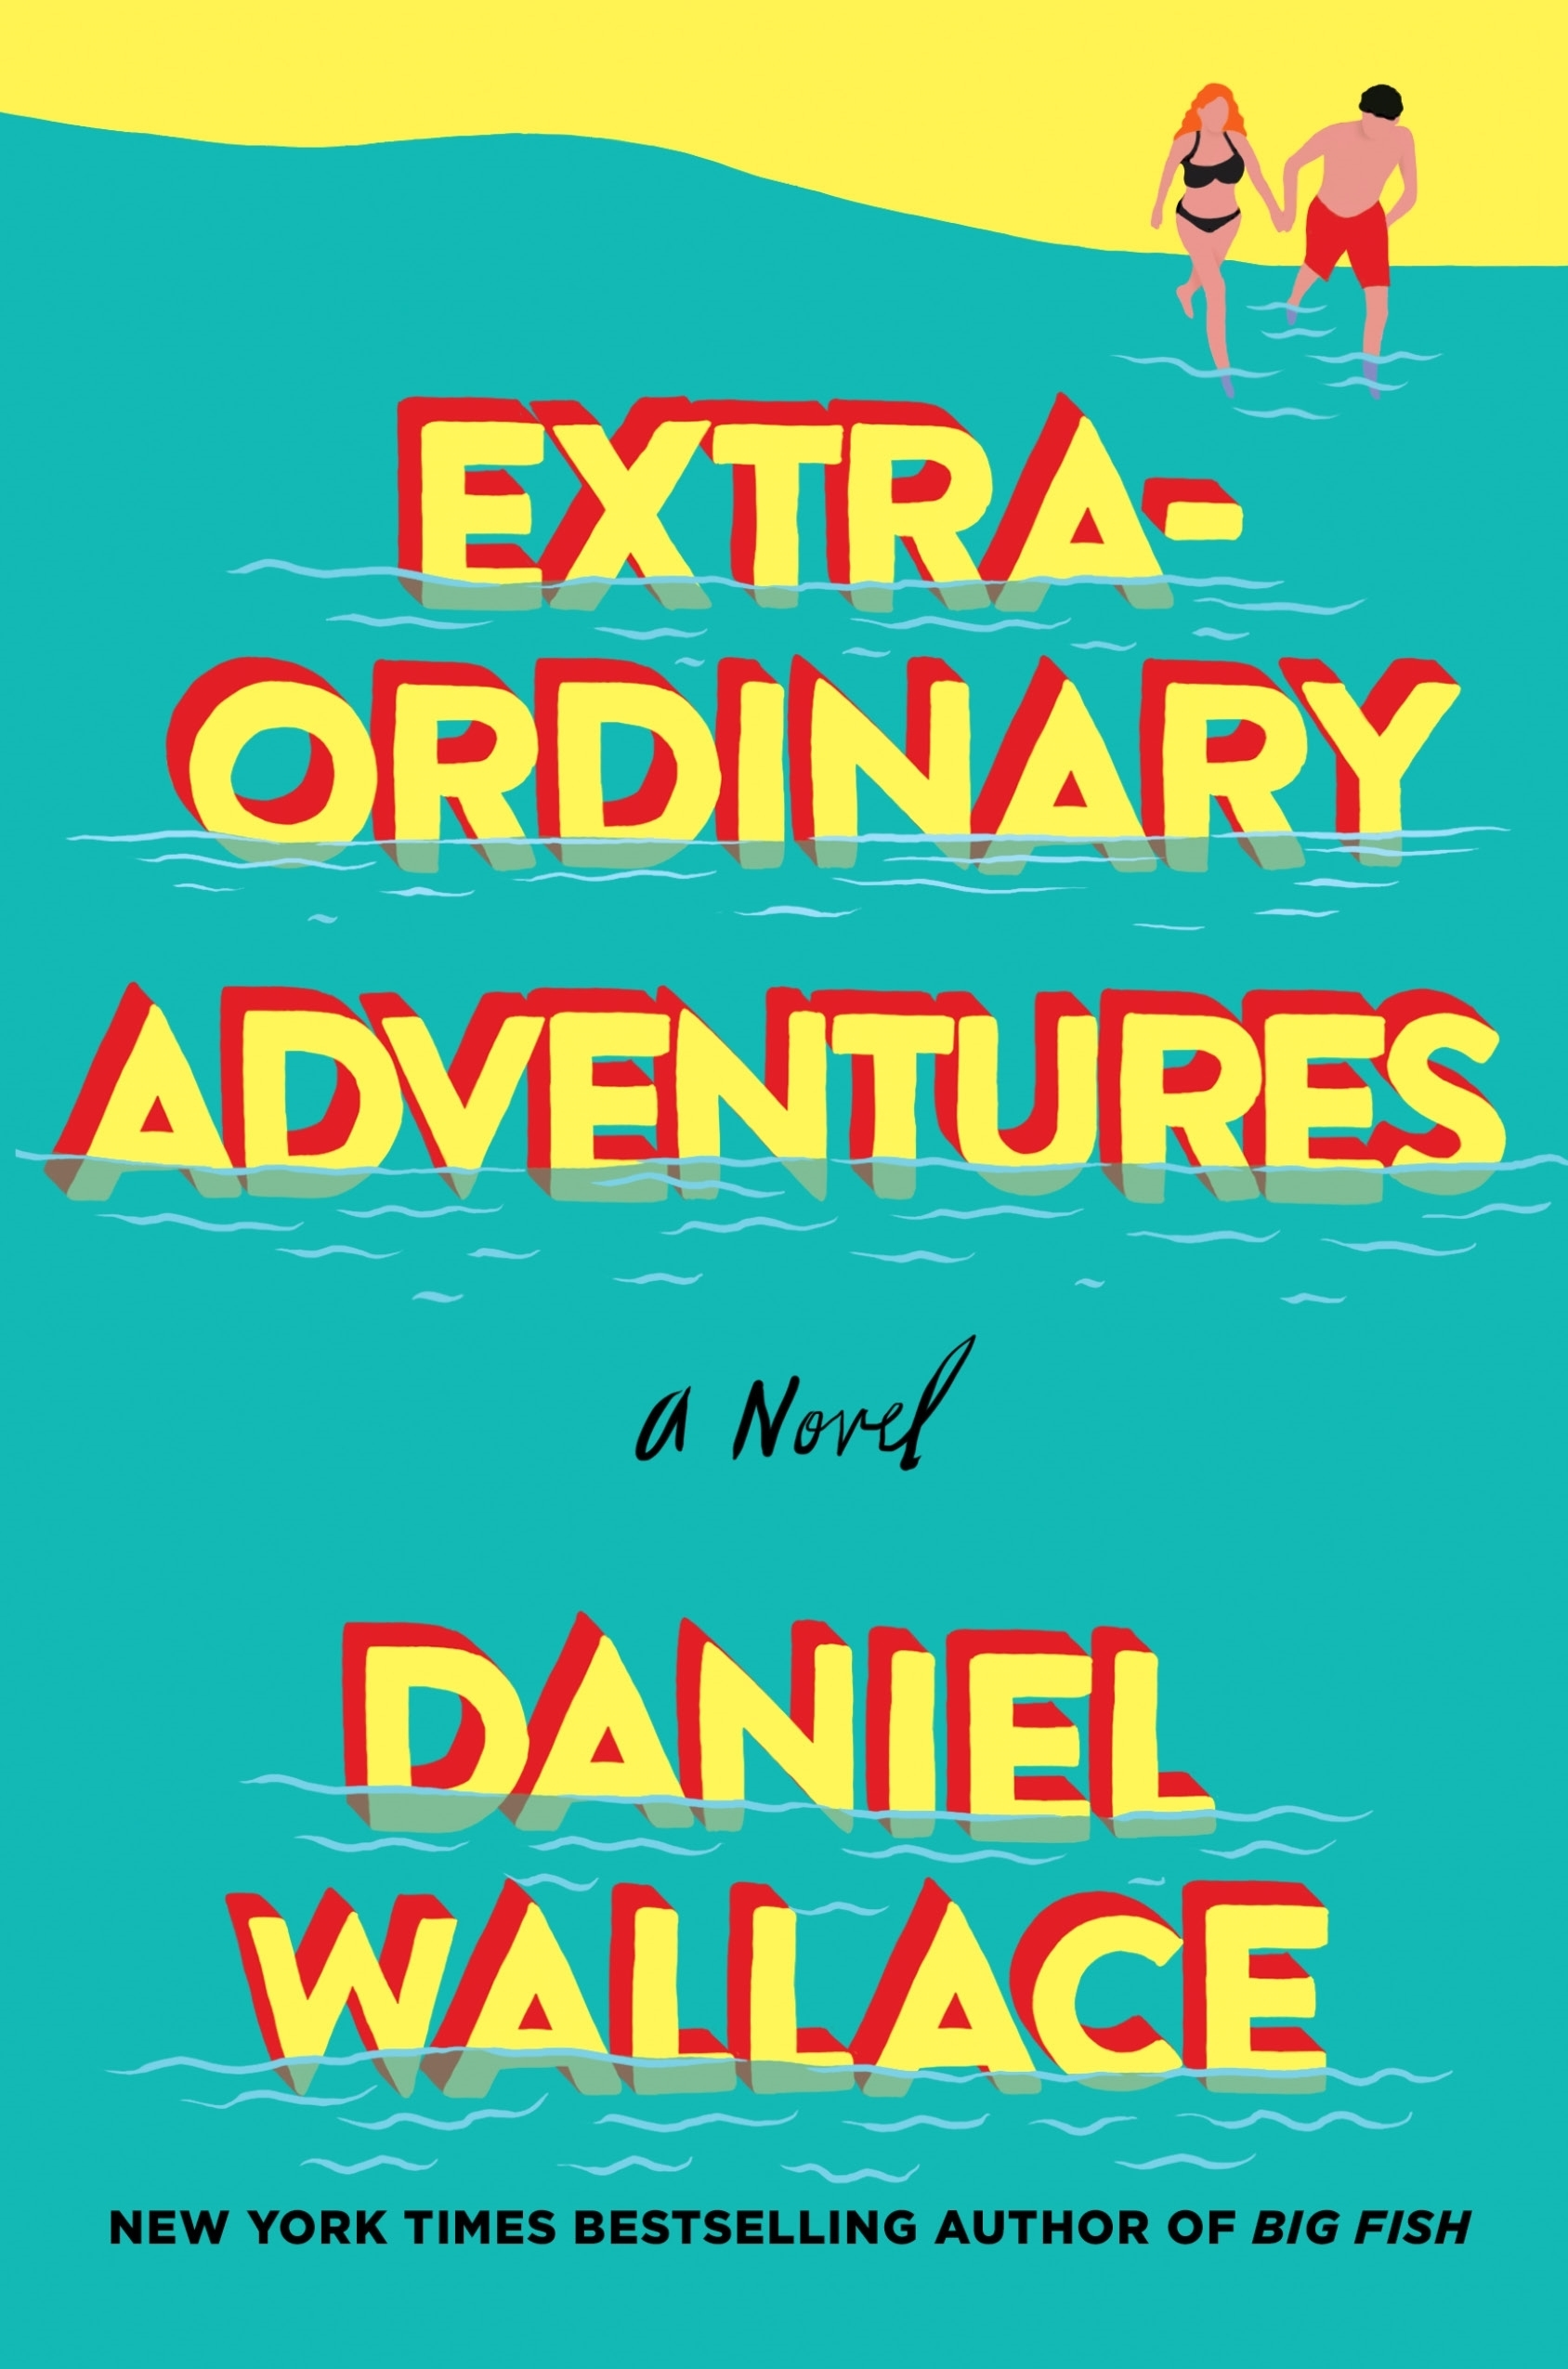 NYC Book Launch: Extraordinary Adventures by Daniel Wallace — in conversation w/ Elizabeth Strout